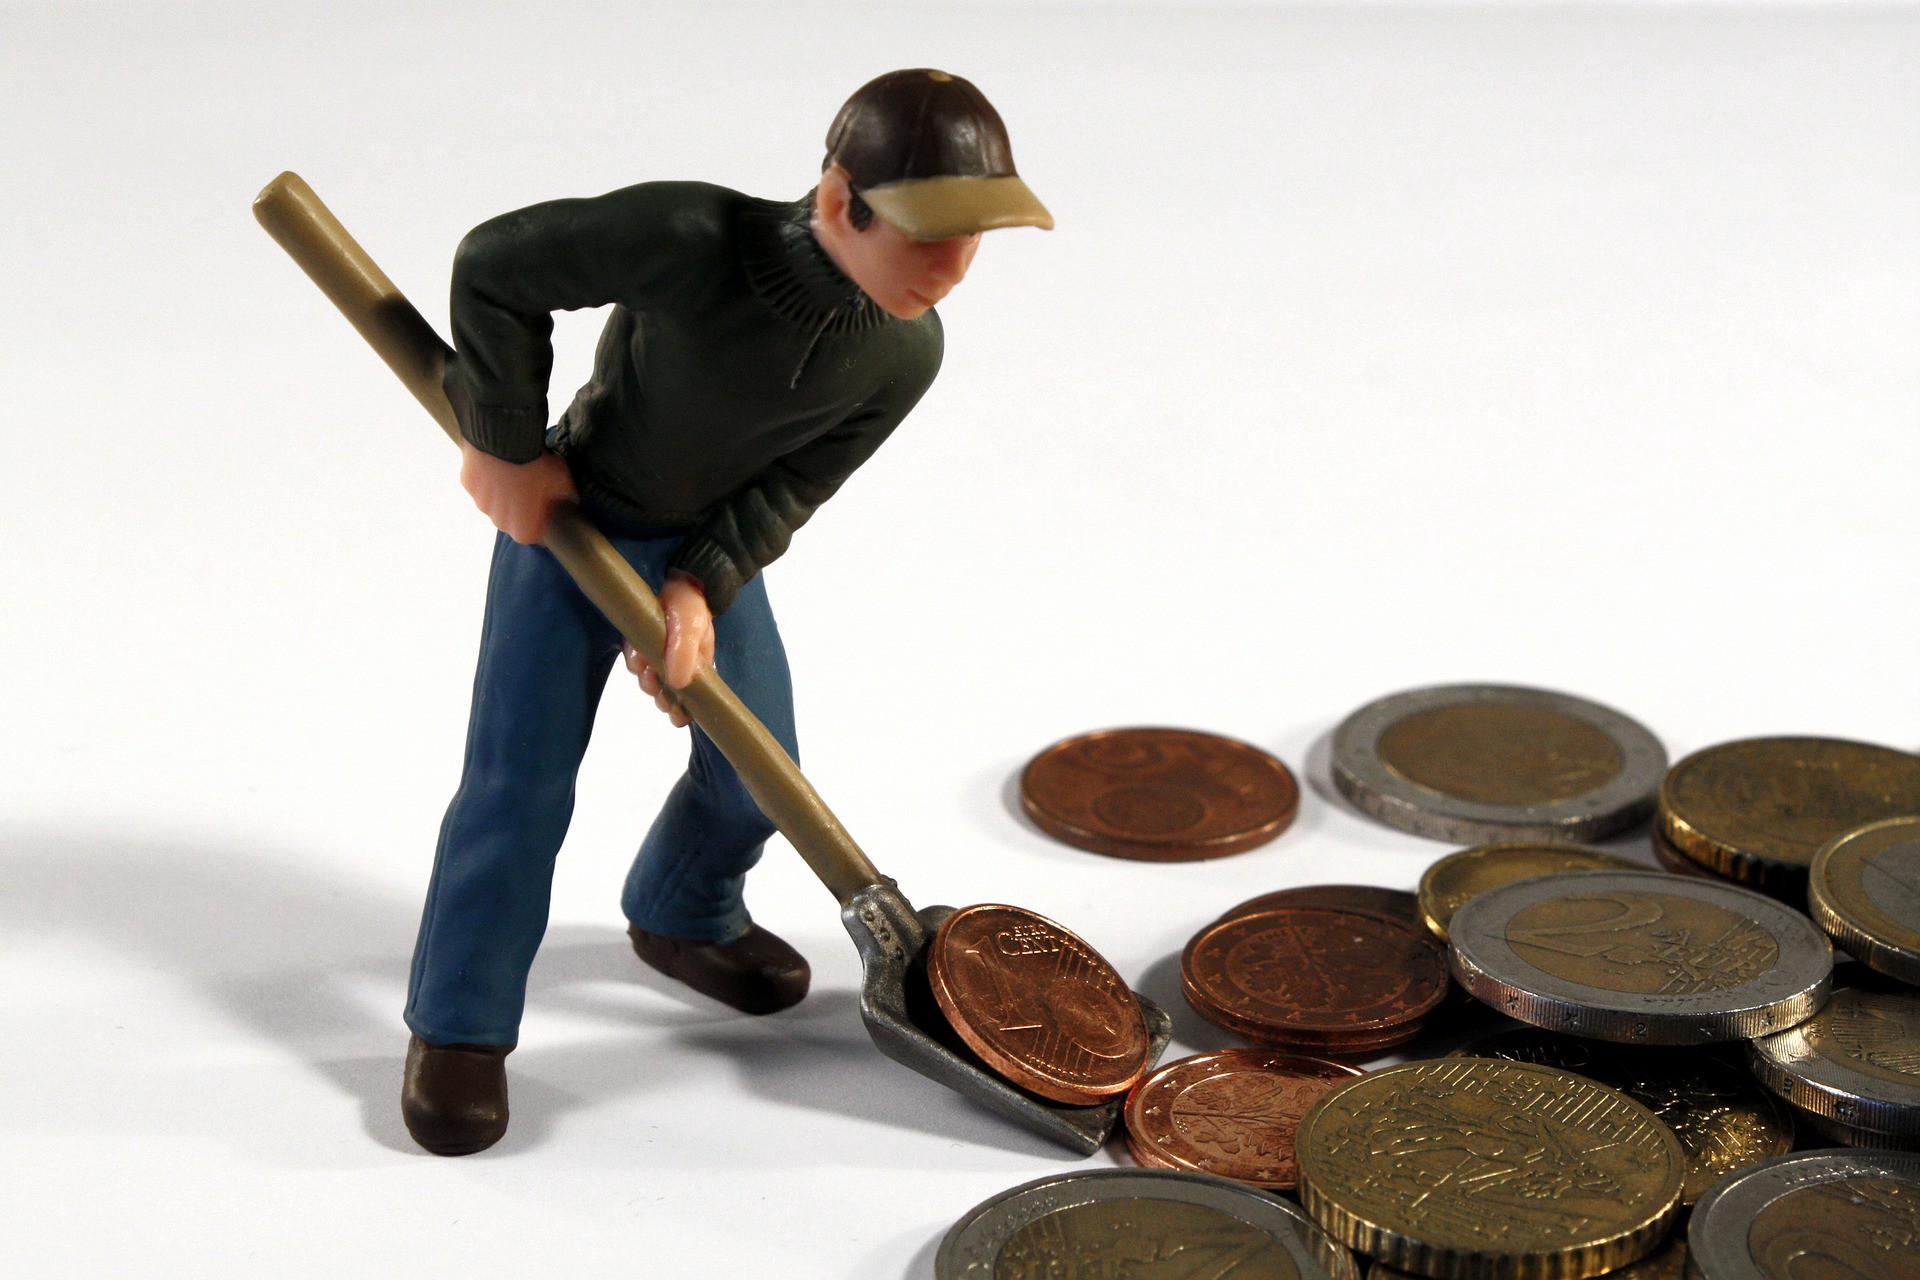 Toy figure of a man shoveling coins.